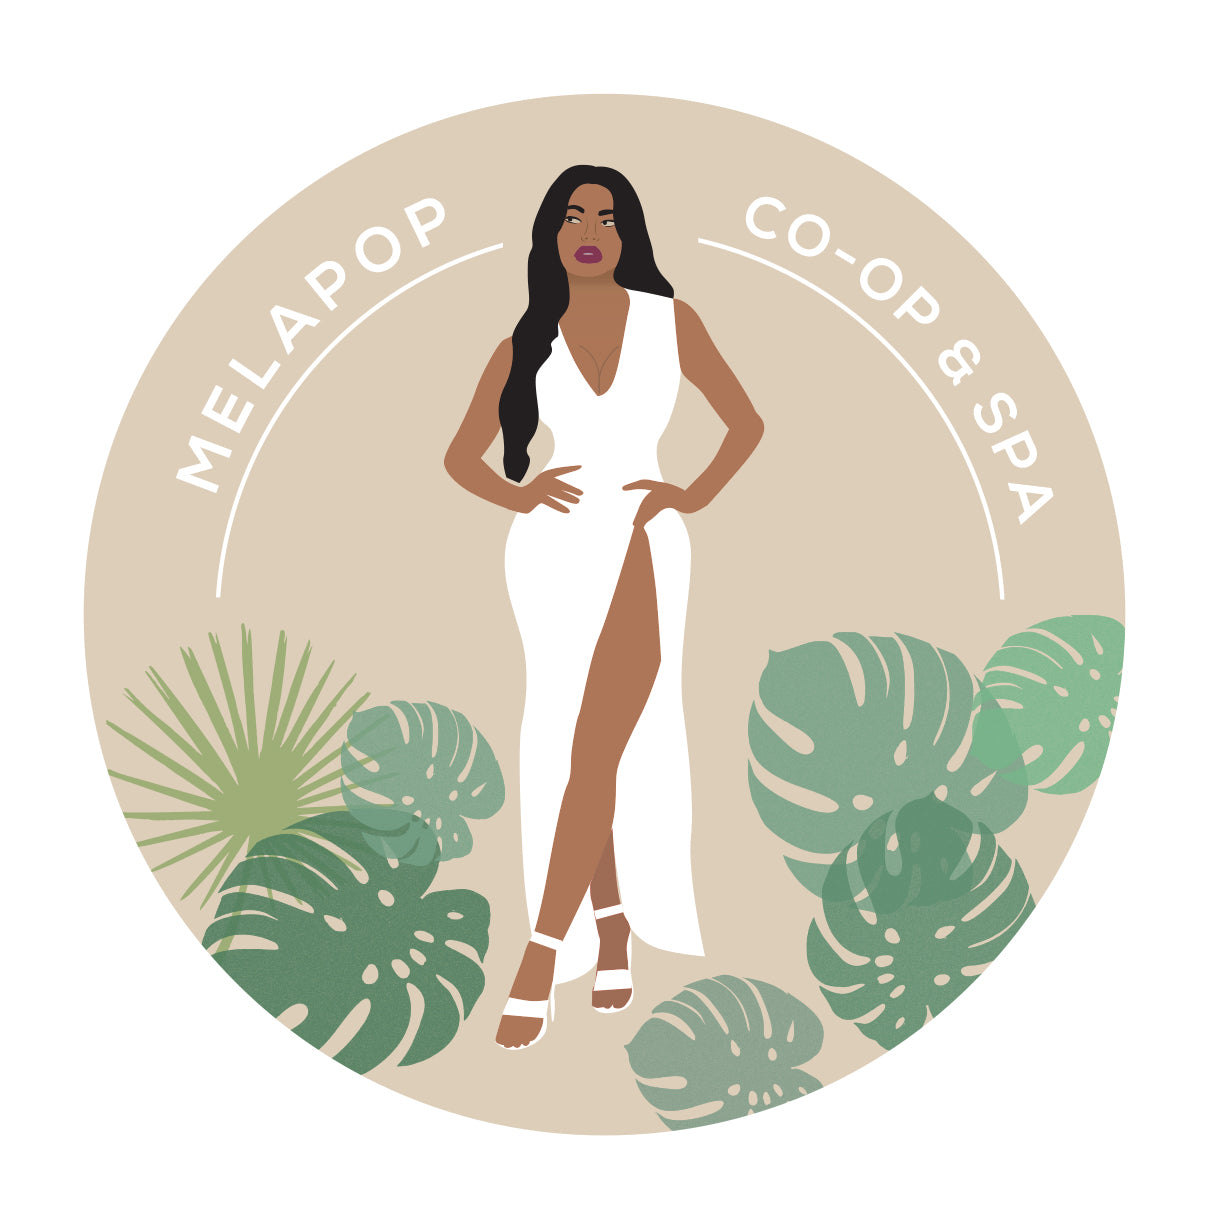 Melapop co-op & Spa